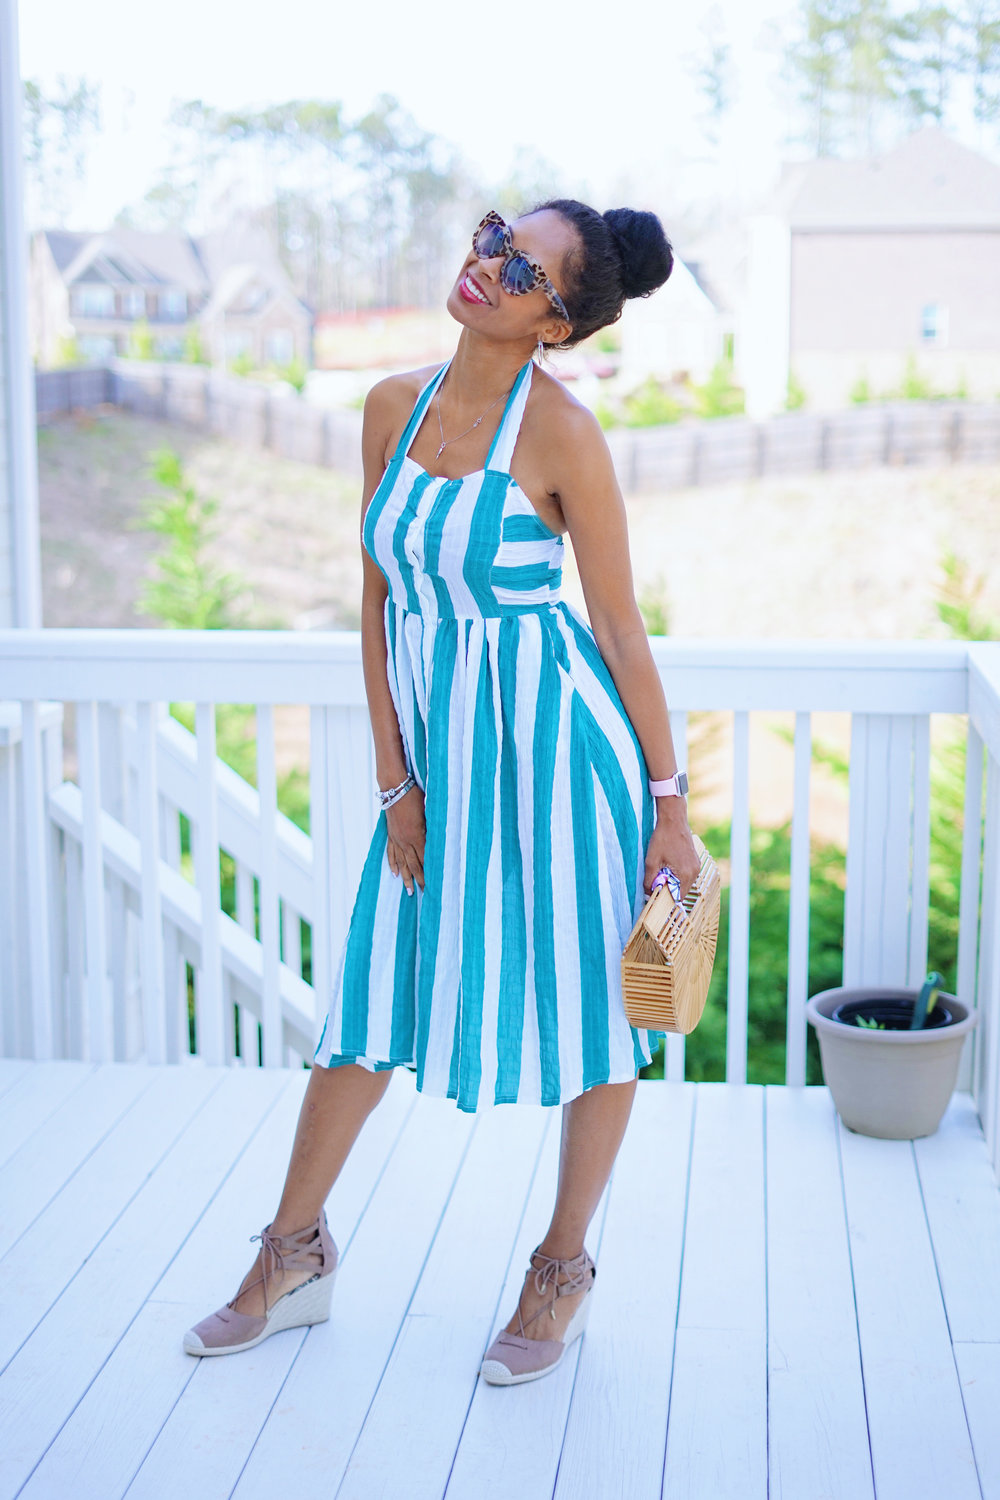 Striped dress 1a.jpg